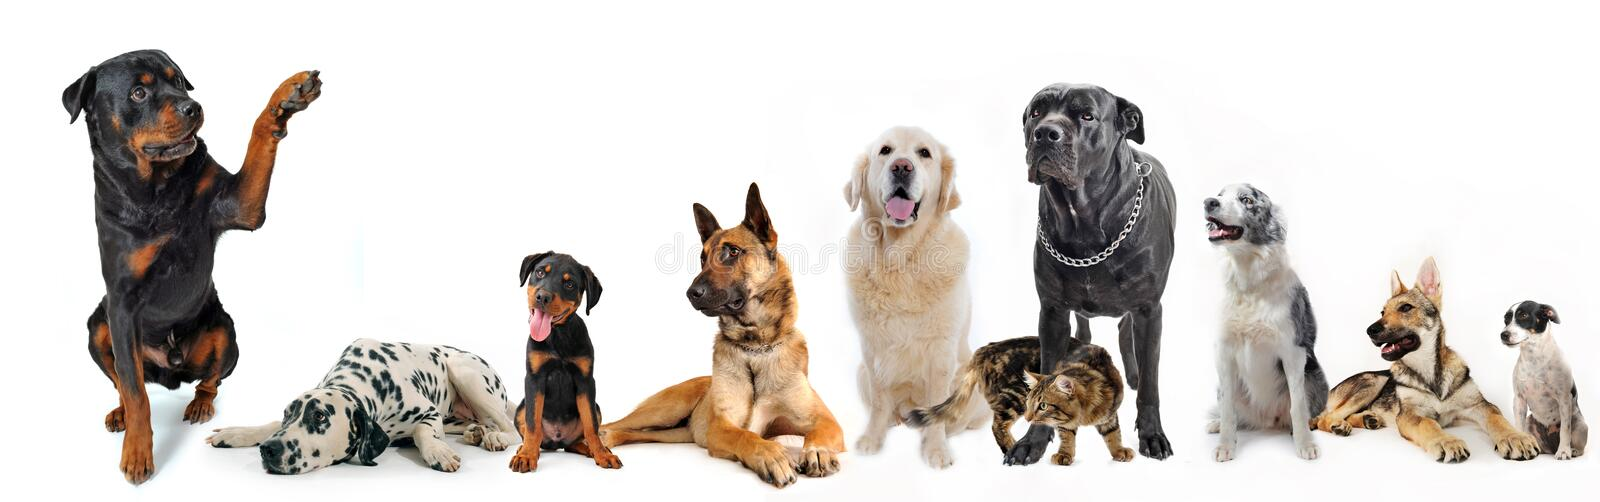 Download Group of dogs and cat stock image. Image of jack, ragdoll - 14233519